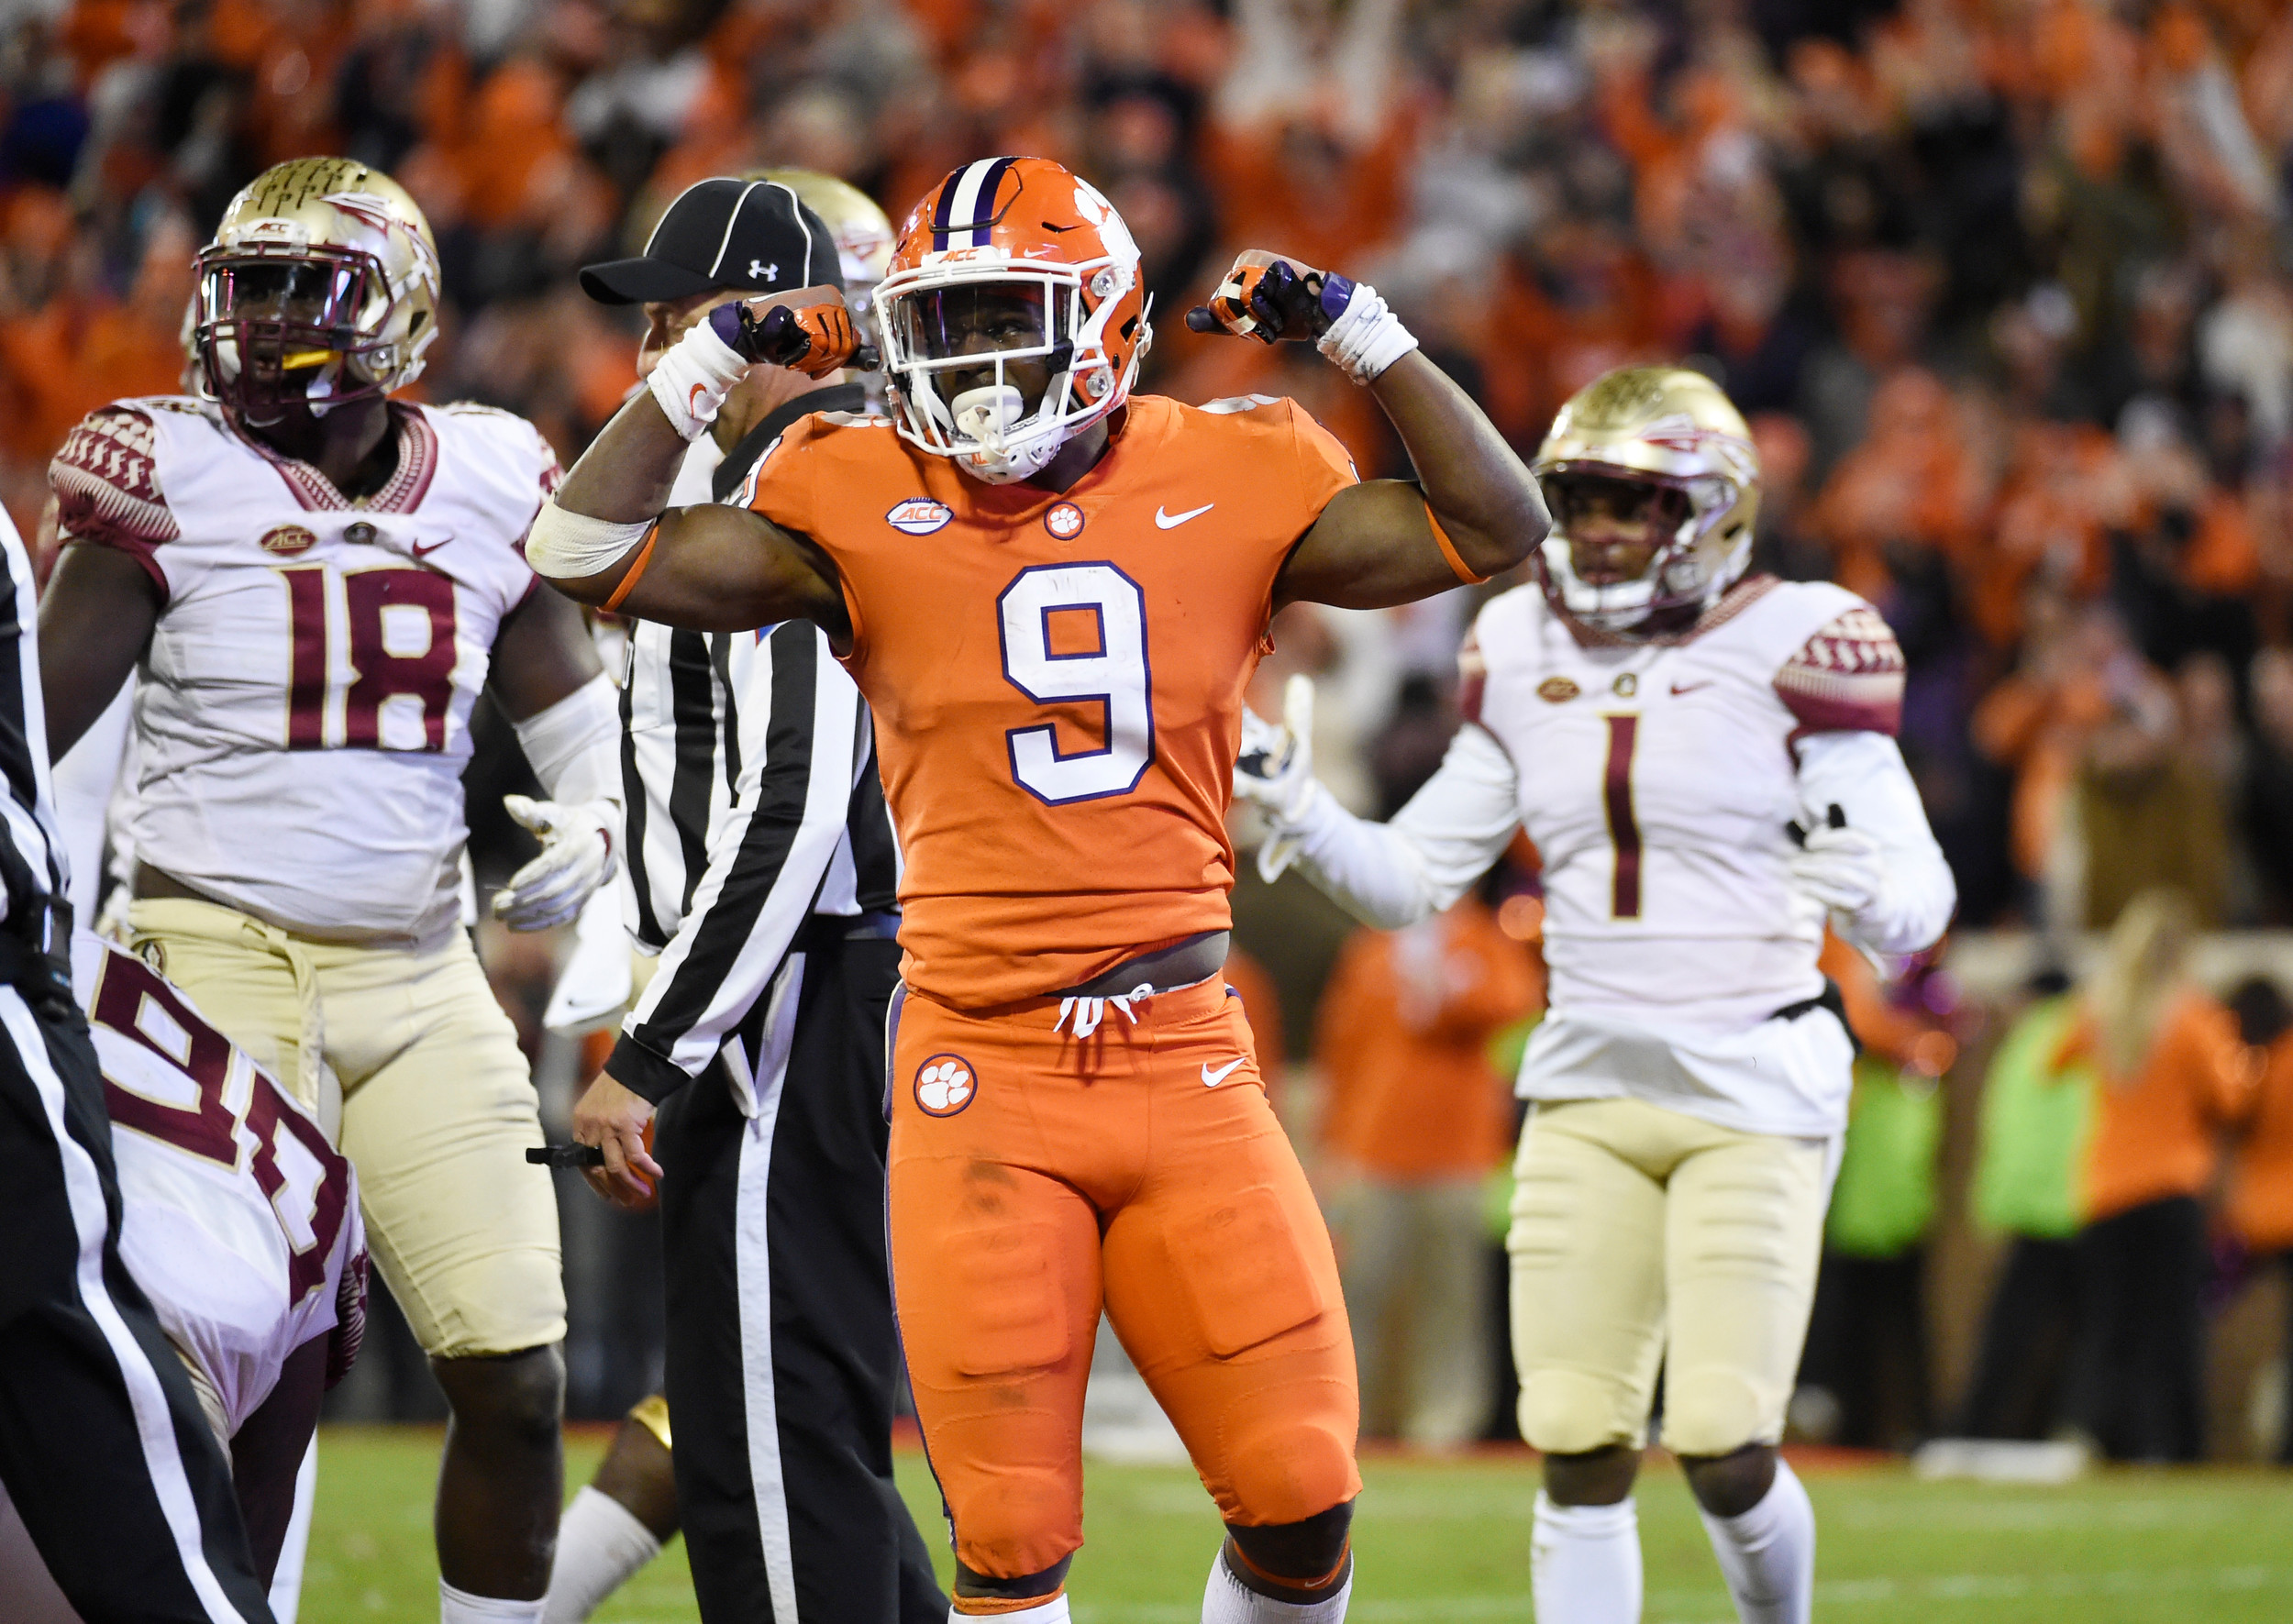 Clemson running back Travis Etienne (9) and the rest of the Tigers hope to celebrate like this today when they play host to The Citadel.